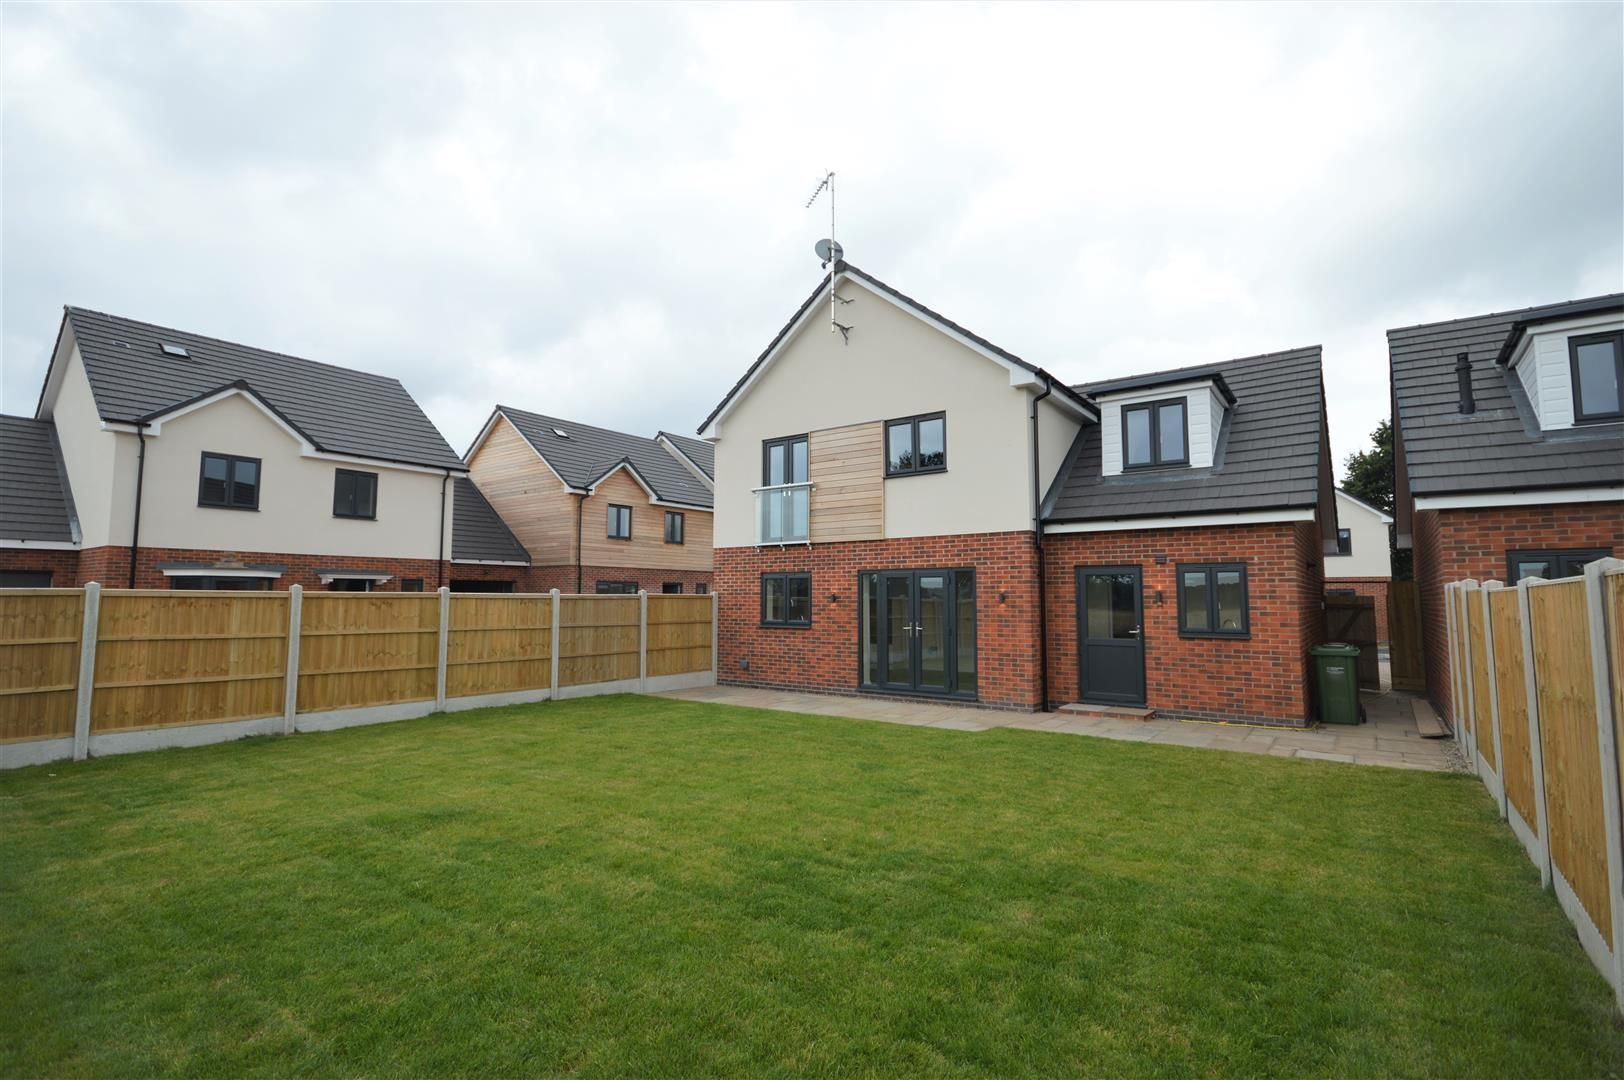 4 bed detached for sale in Kingsland  - Property Image 9